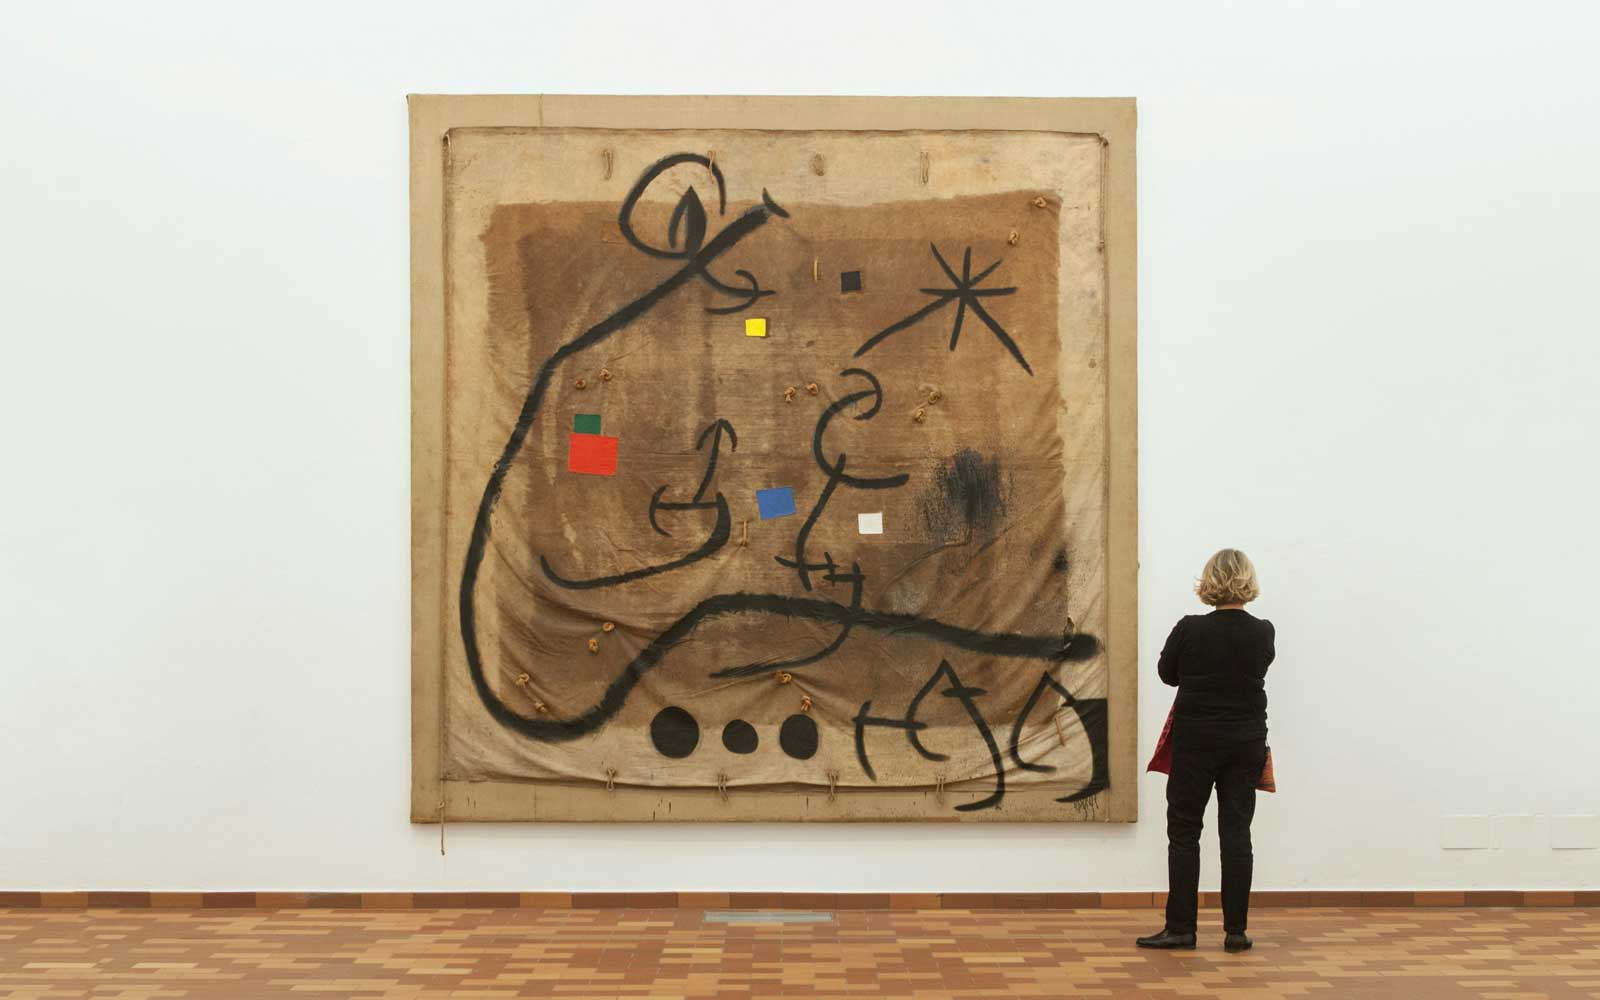 Works by Joan Miro at the Fundacio Miro in Barcelona